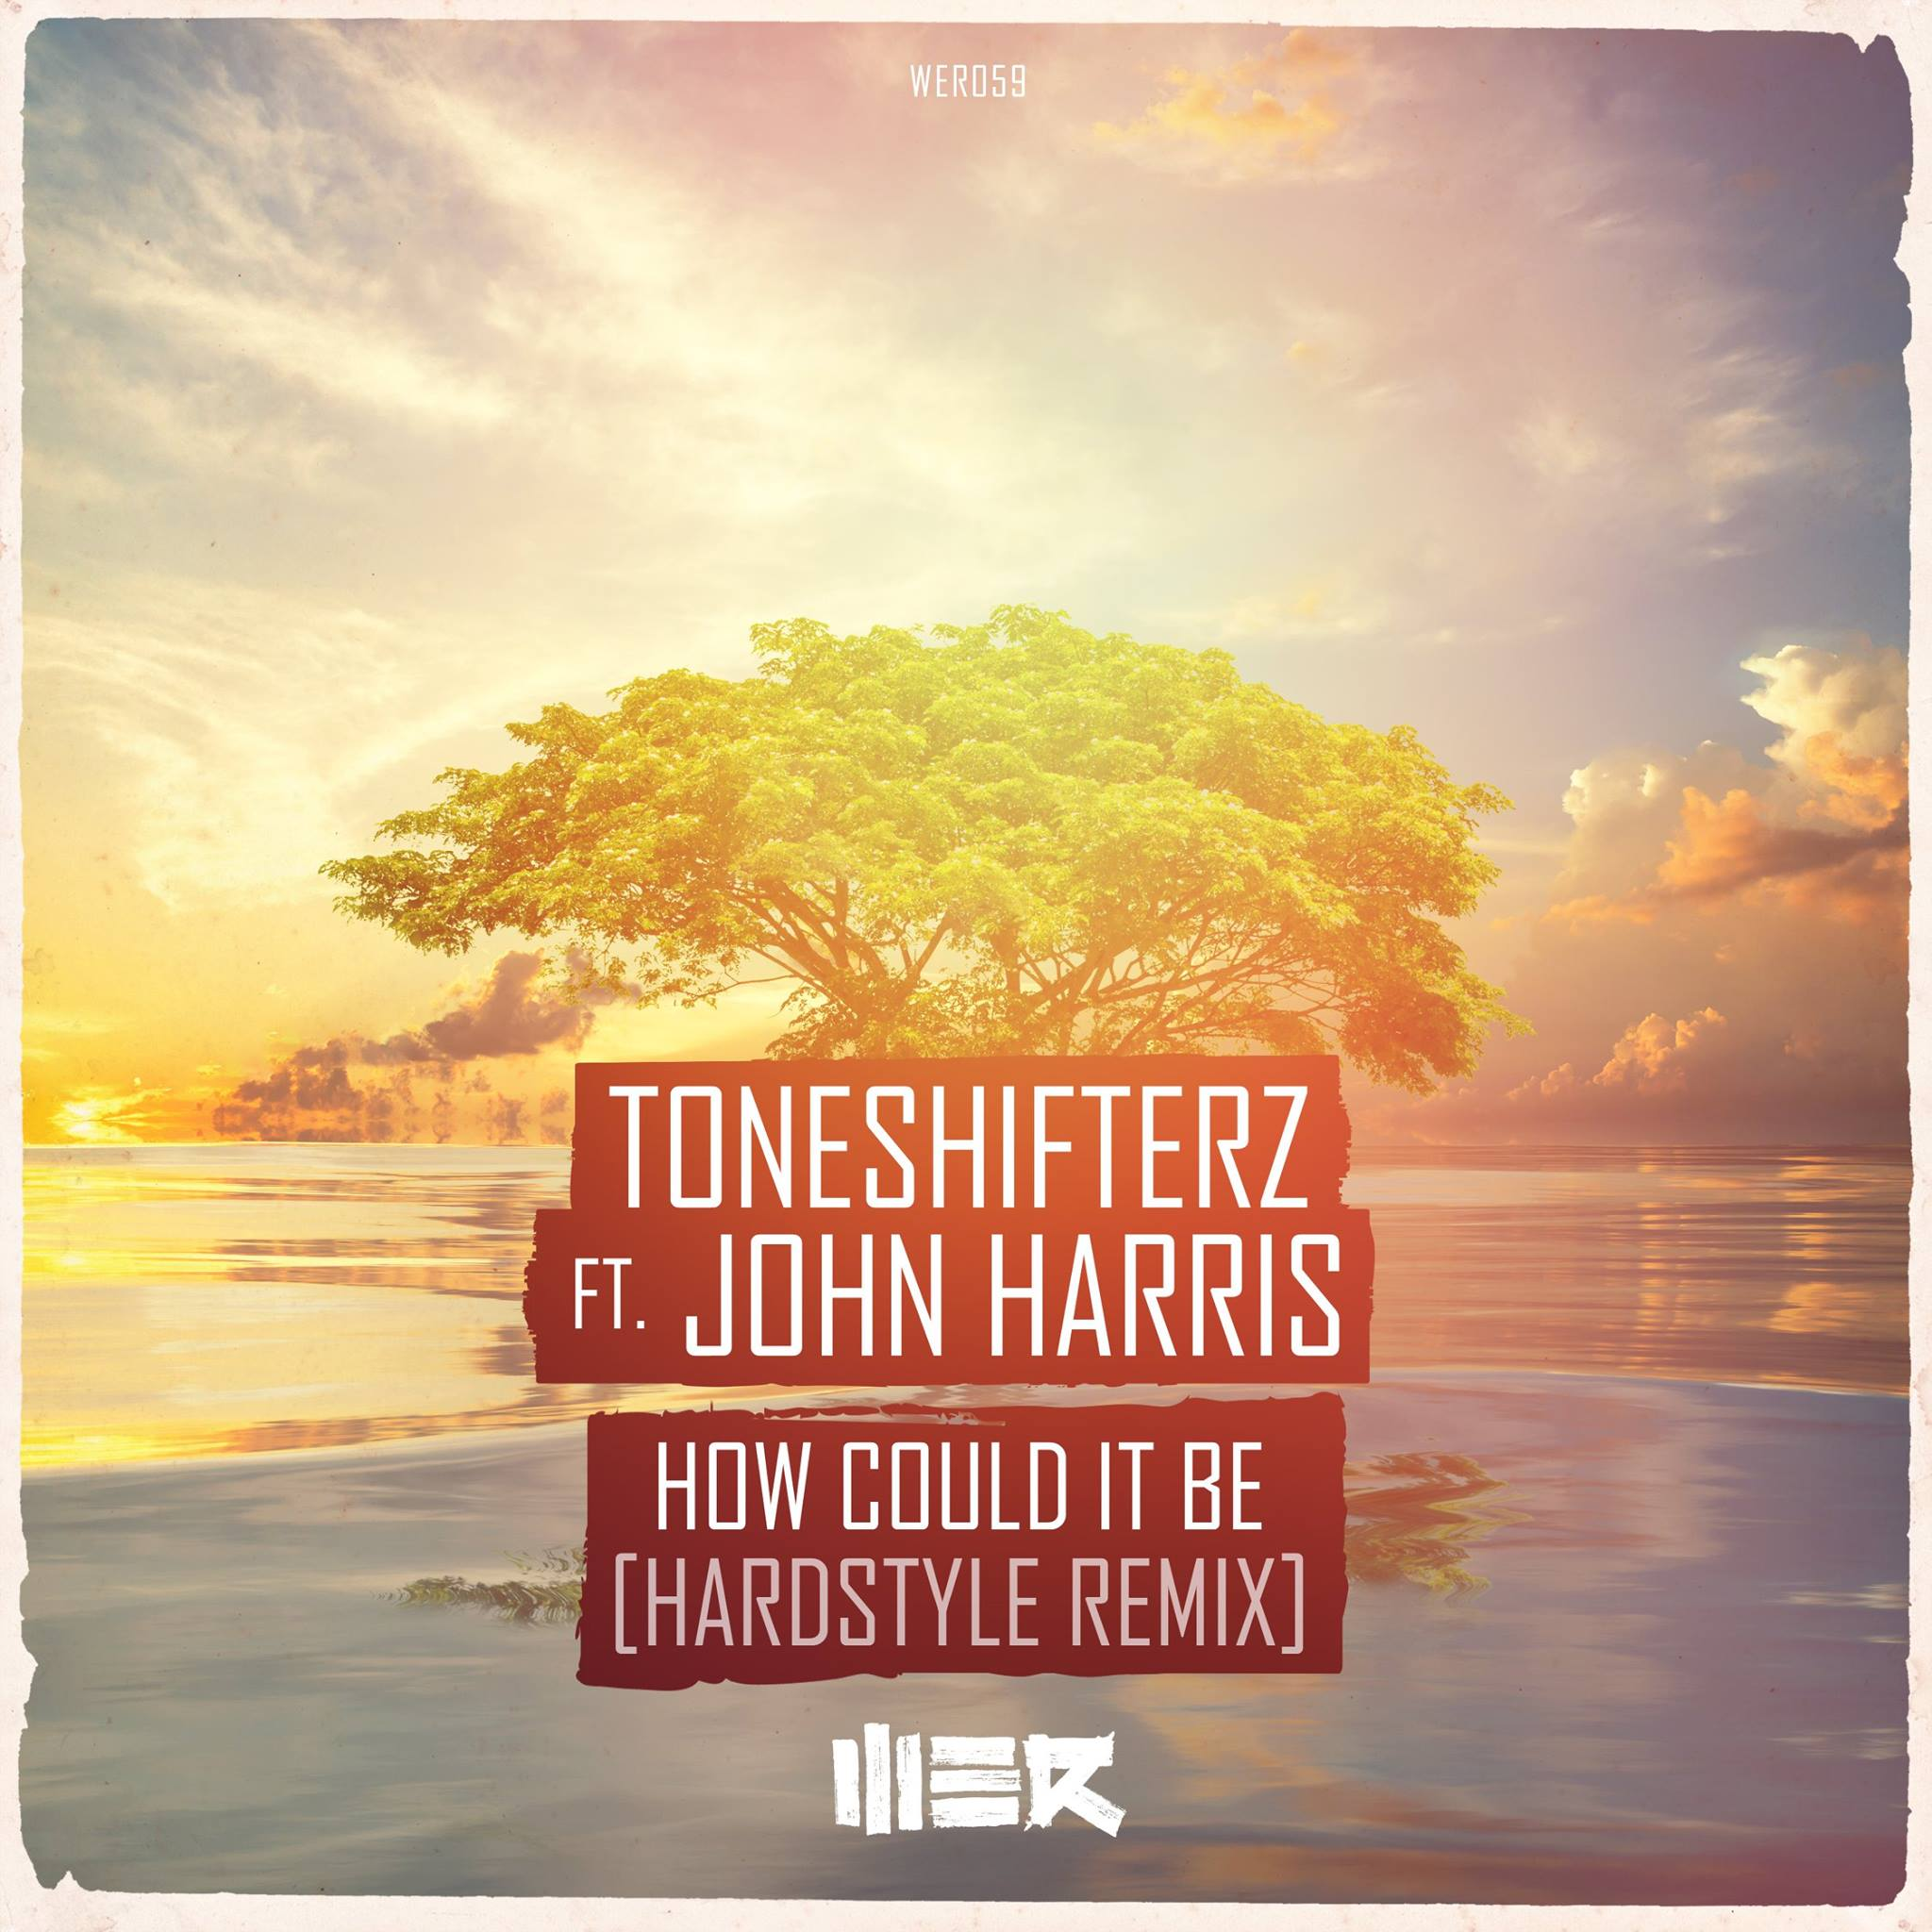 Toneshifterz - How Could It Be (Hardstyle Remix) (Feat. John Harris)